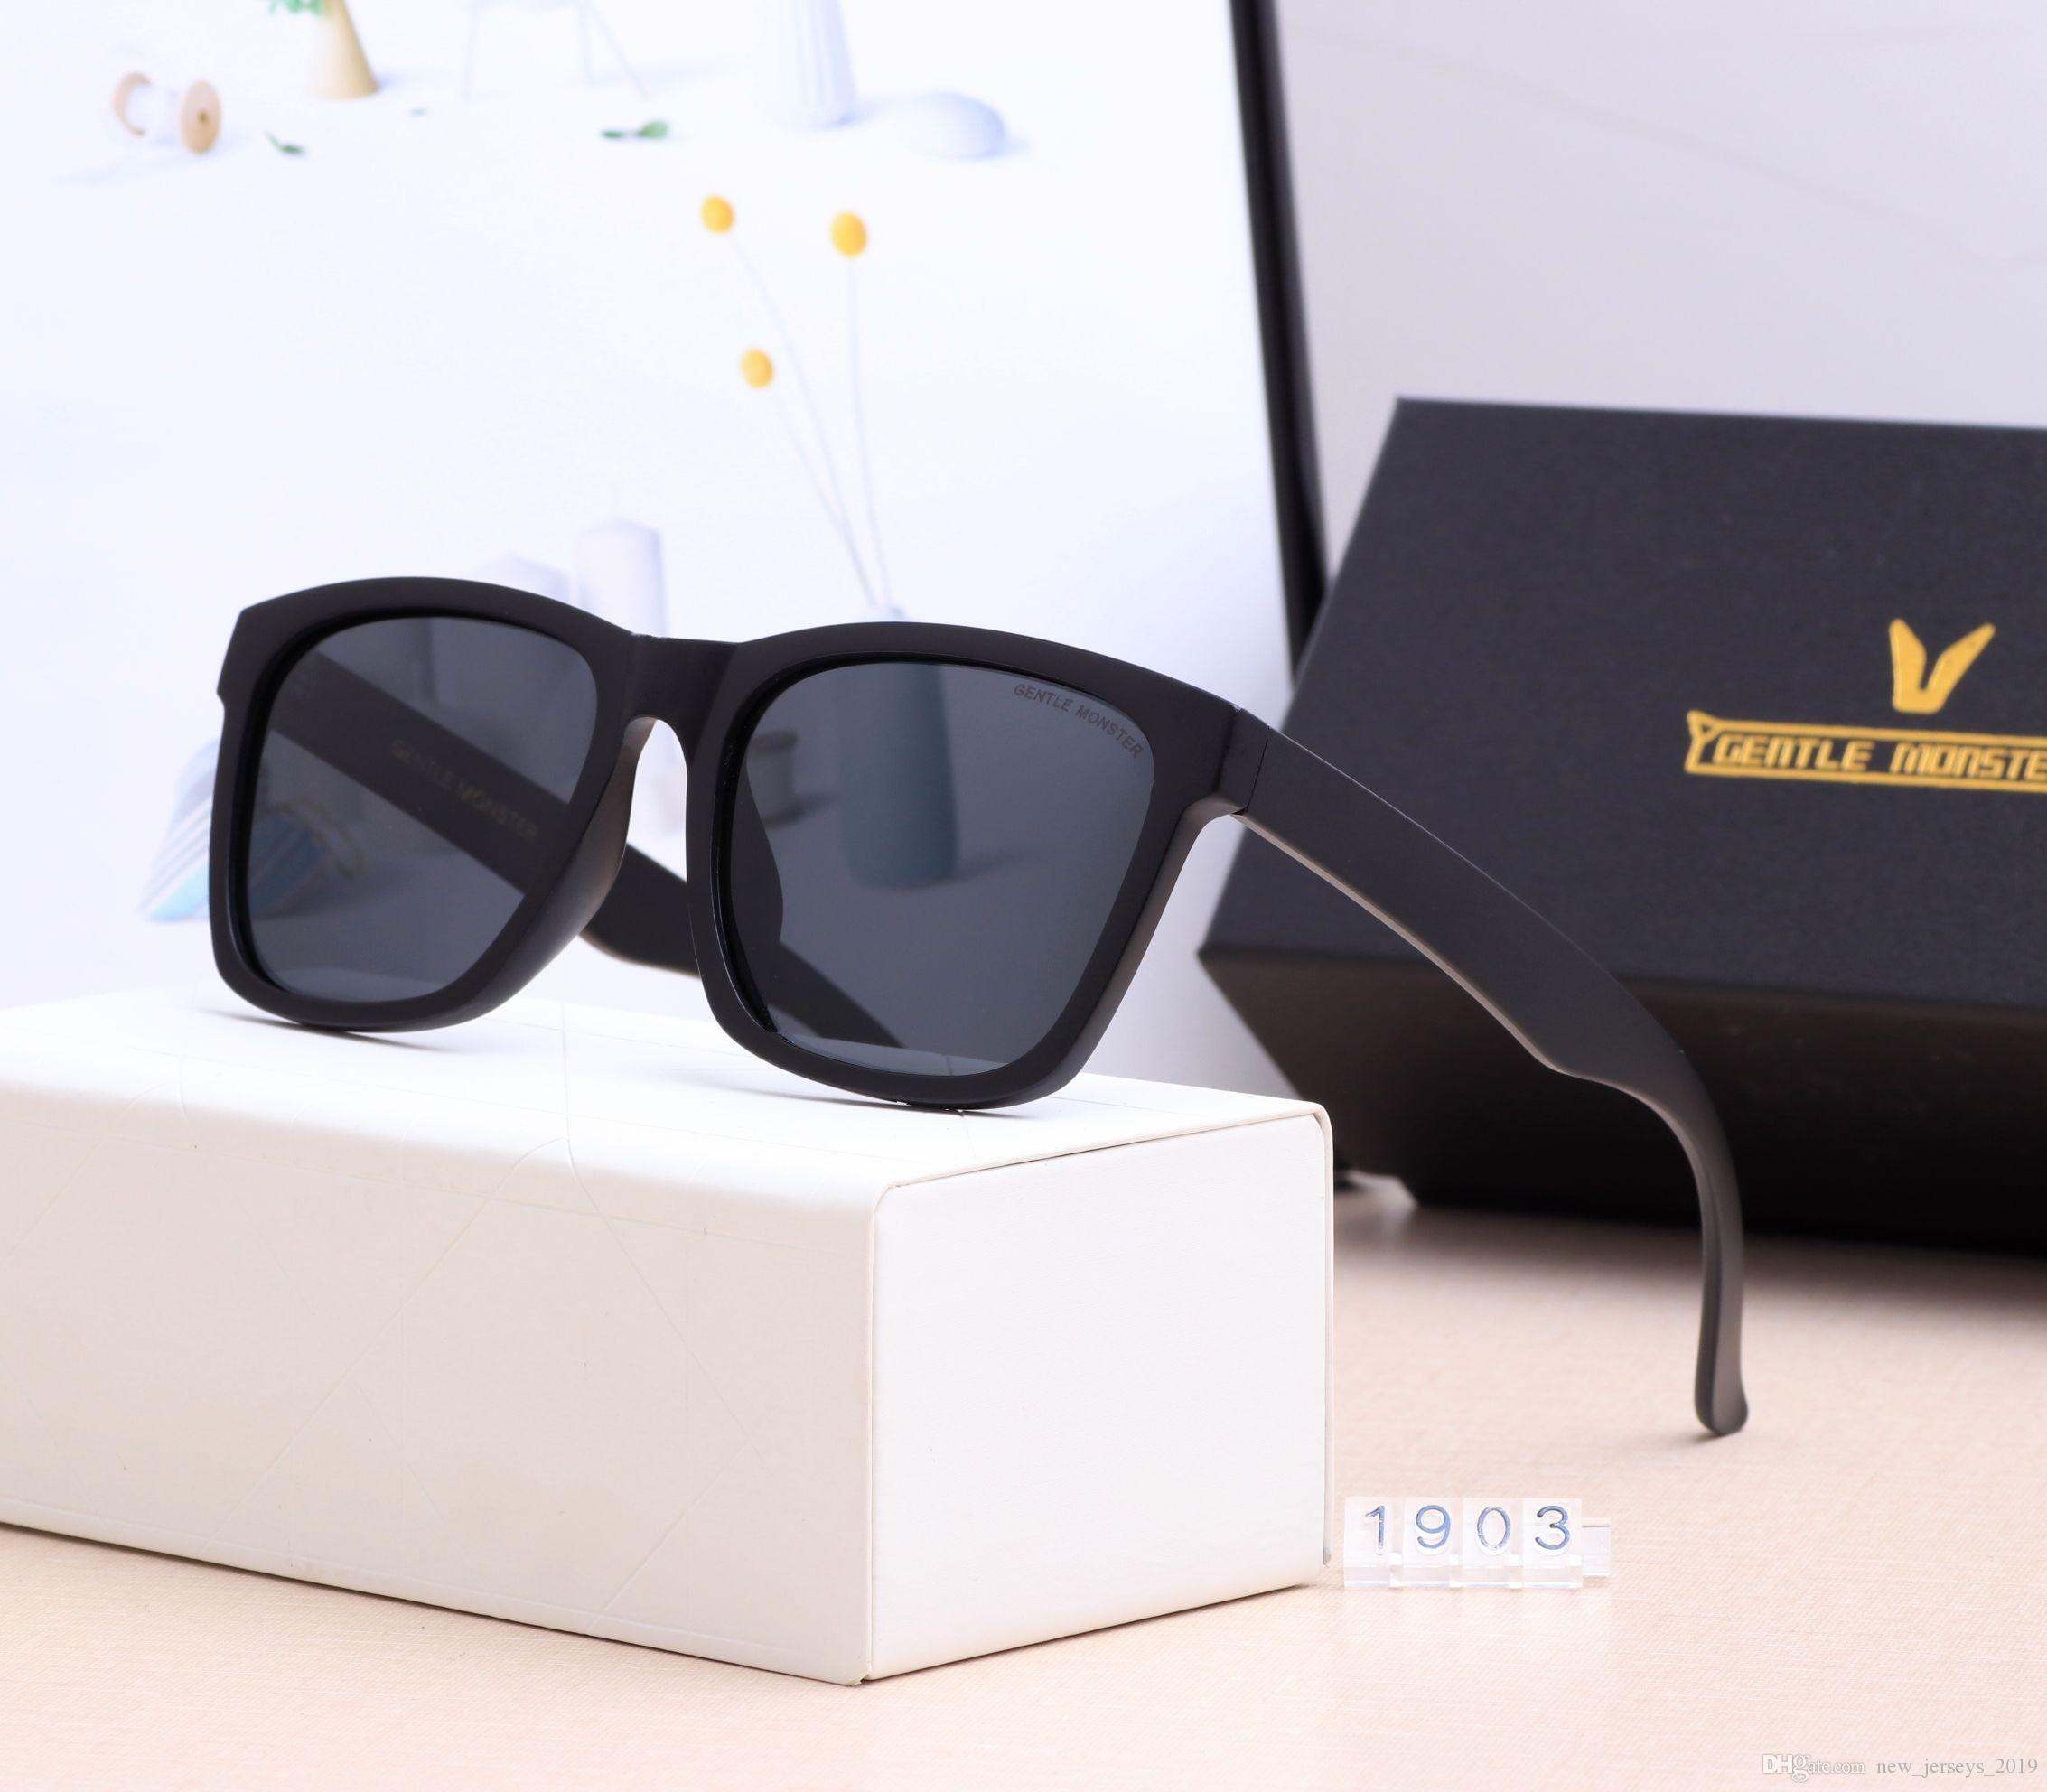 2019 Top Quality Gentle Monster 1903 Fashion V Brand Sunglasses luxury Men and women 57mm UV400 Polarized Lens Eyewear Ray Glasses Bans